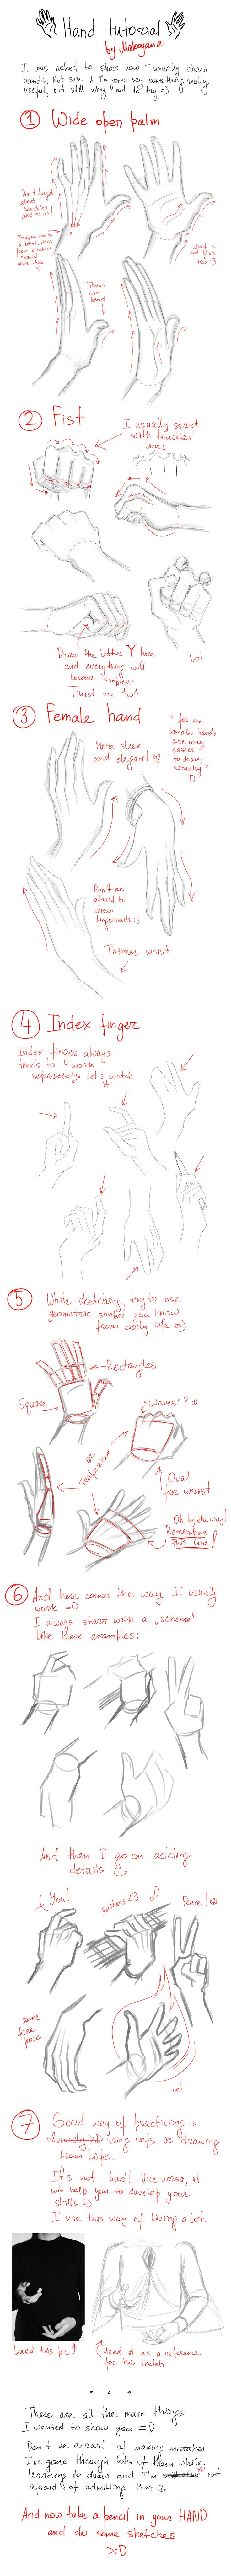 Hands tutorial by Makoyana.deviantart.com on @deviantART